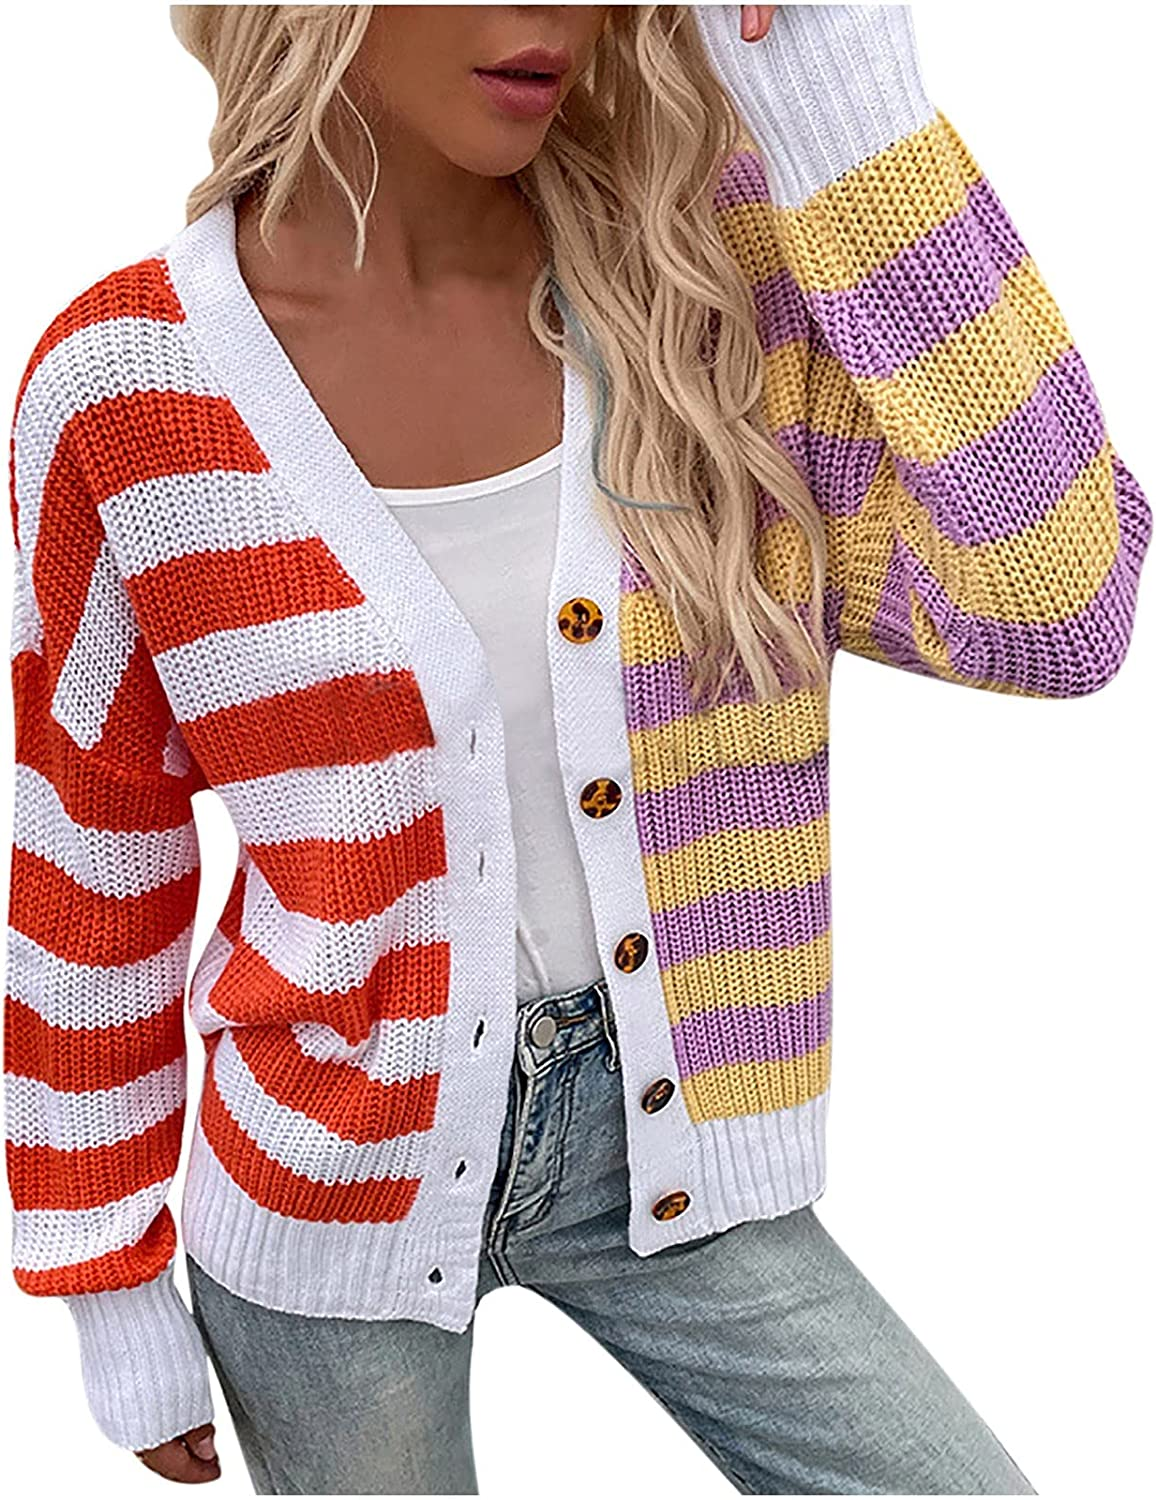 Women's Casual Stripe Buttons Cardigan Sweater Loose Color Block Fashion Tops Long Sleeve Knitted V-Neck Coat